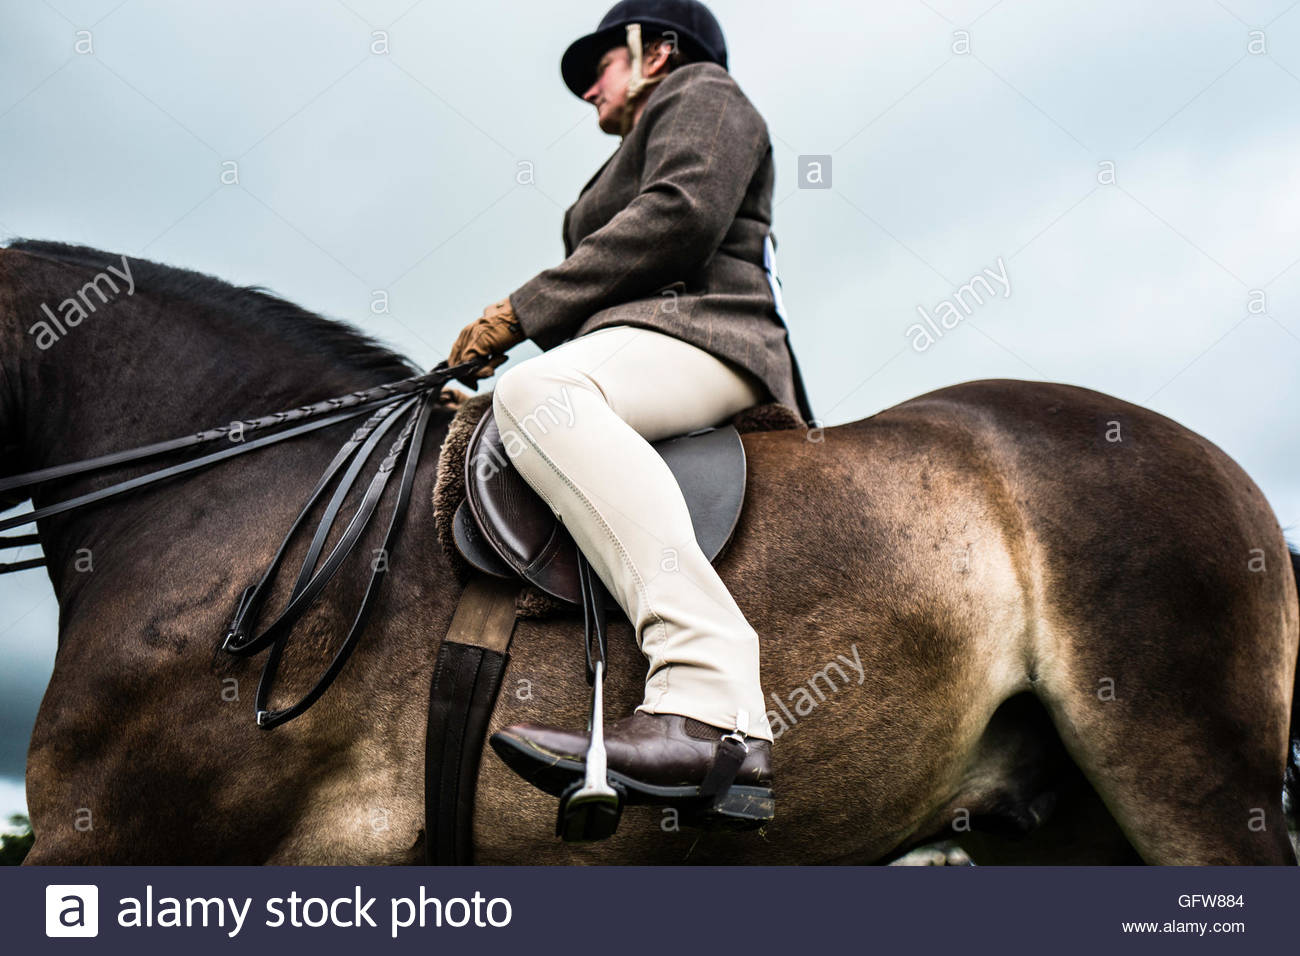 Horse rider in formal dress & short boots riding a bay. - Stock Image